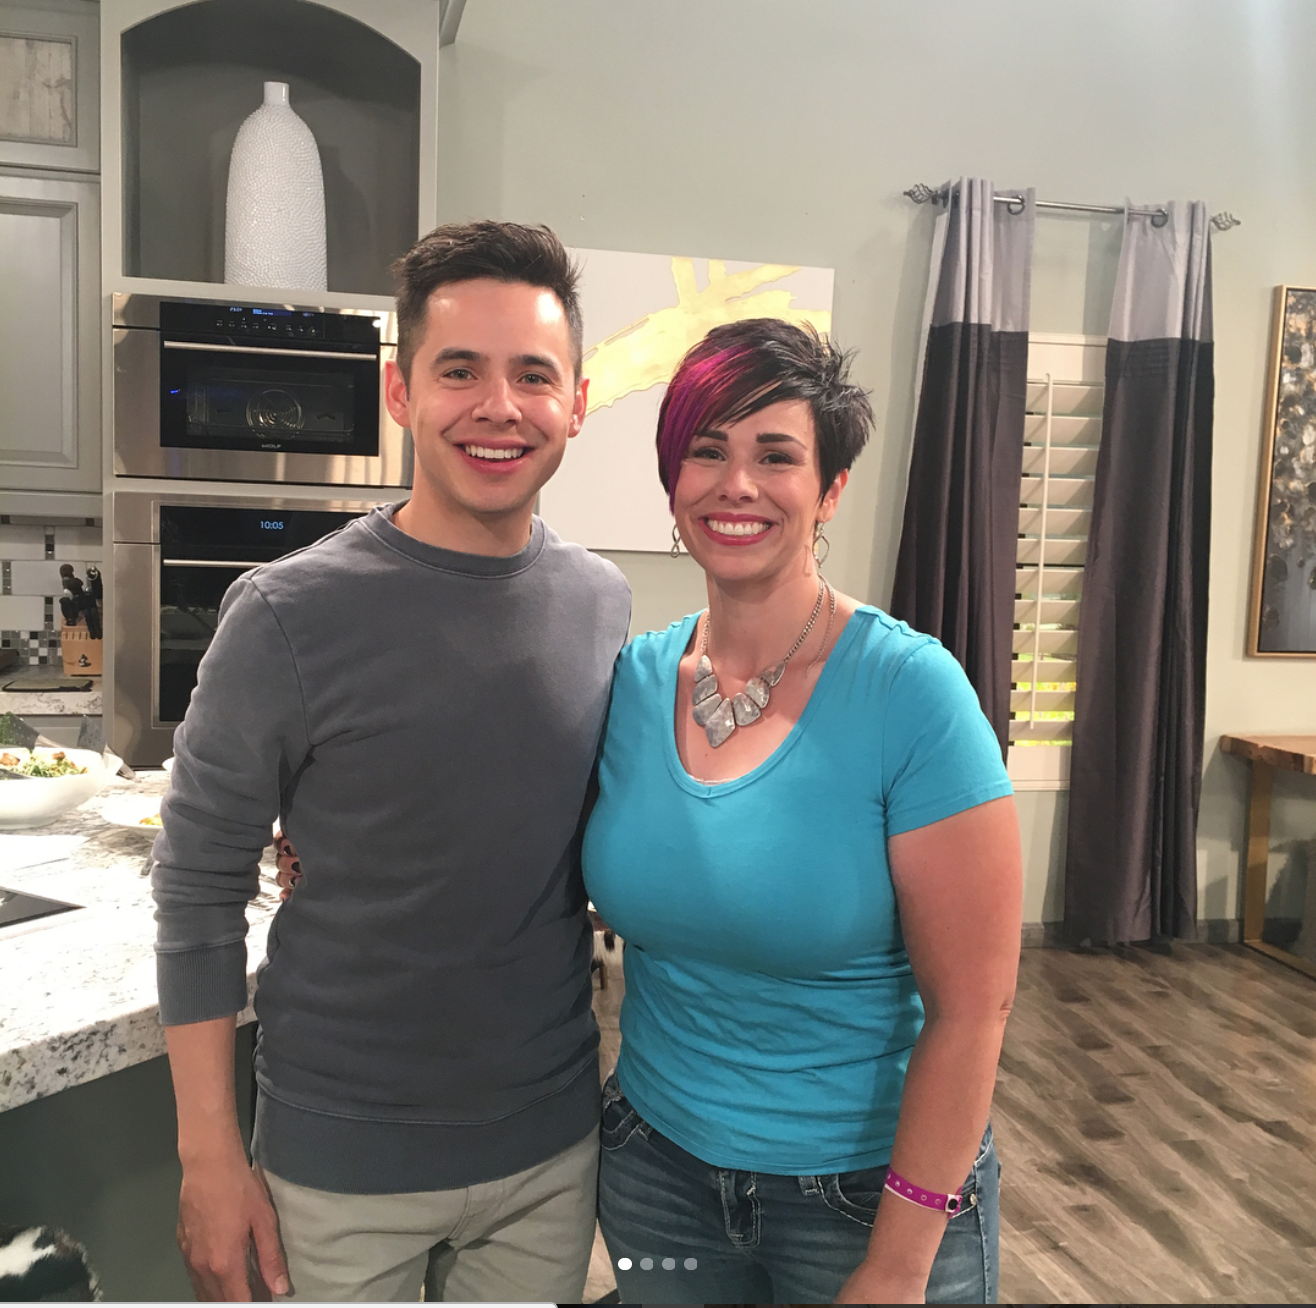 David Archuleta Good Things Utah @Einteinskitchen IG